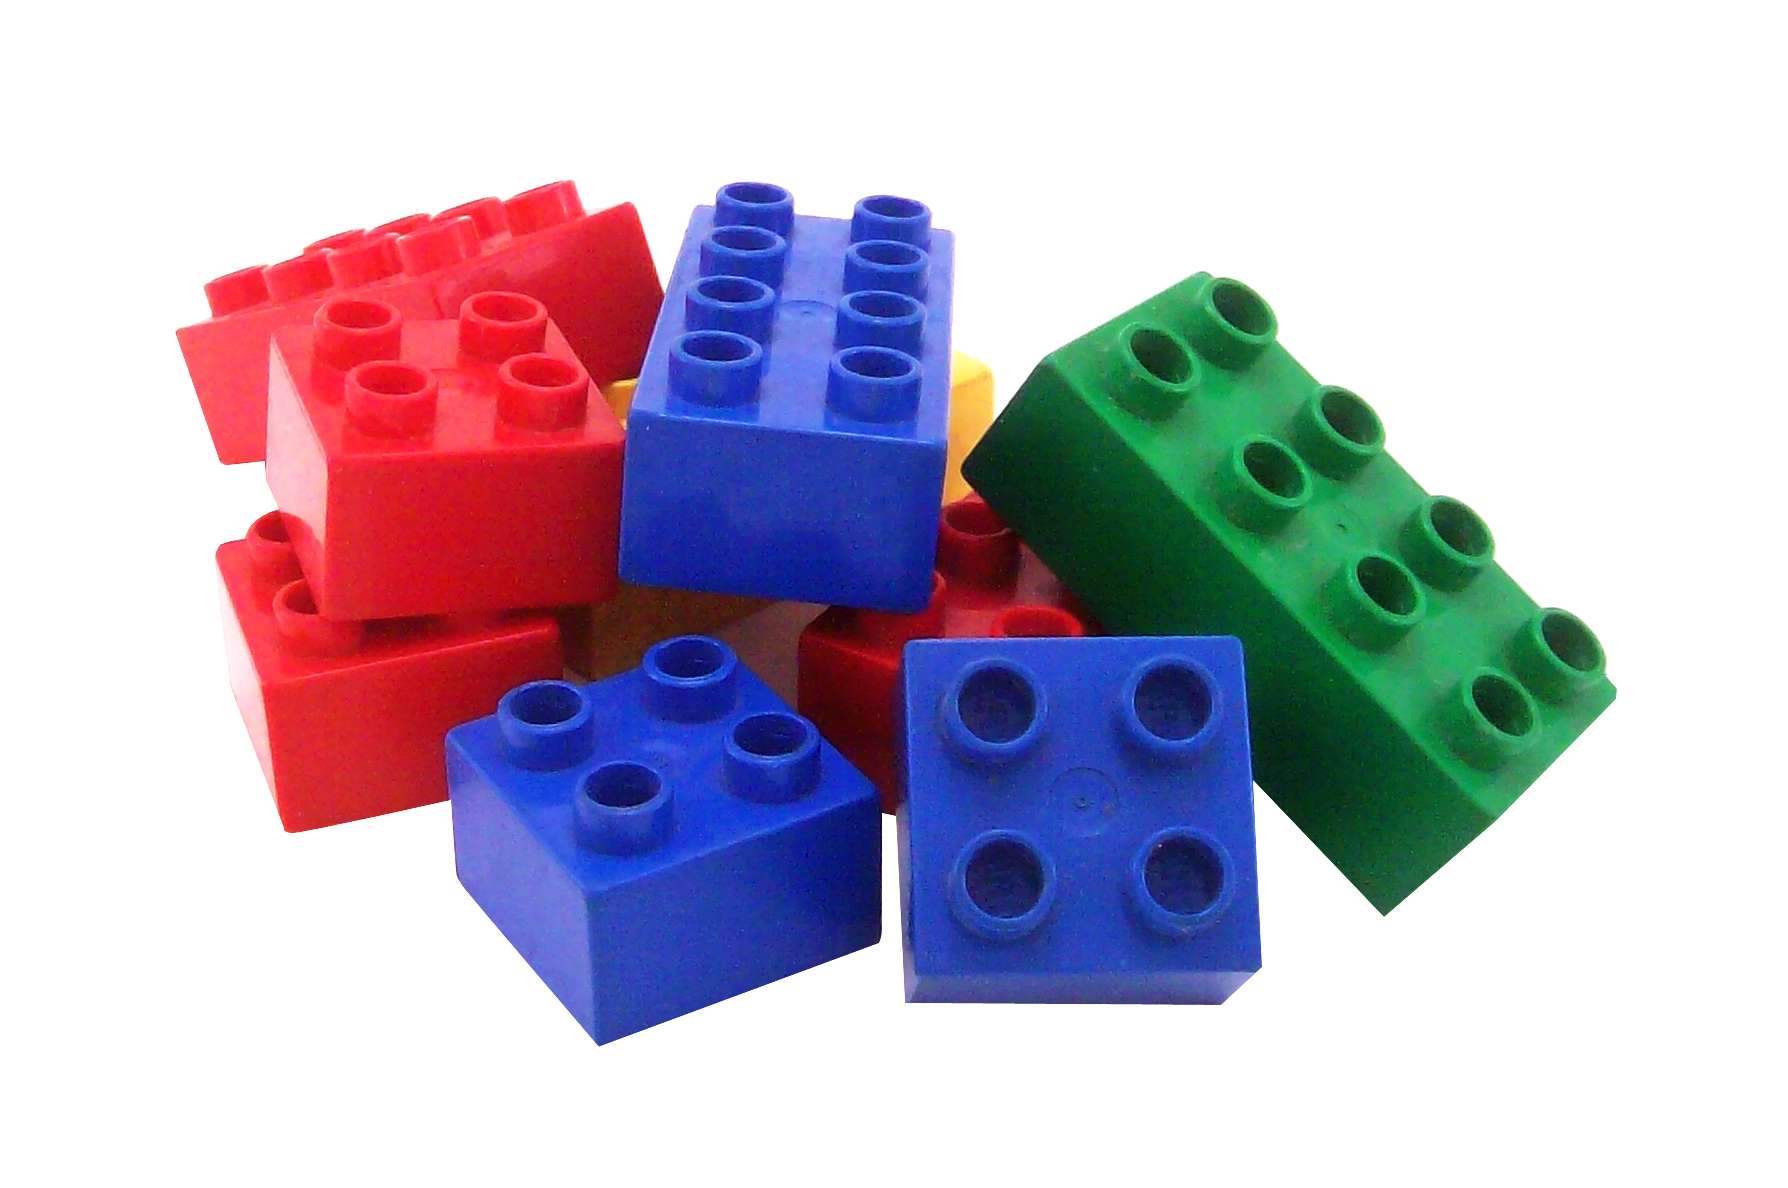 Lego clipart construction lego. Bricks png image pngpix